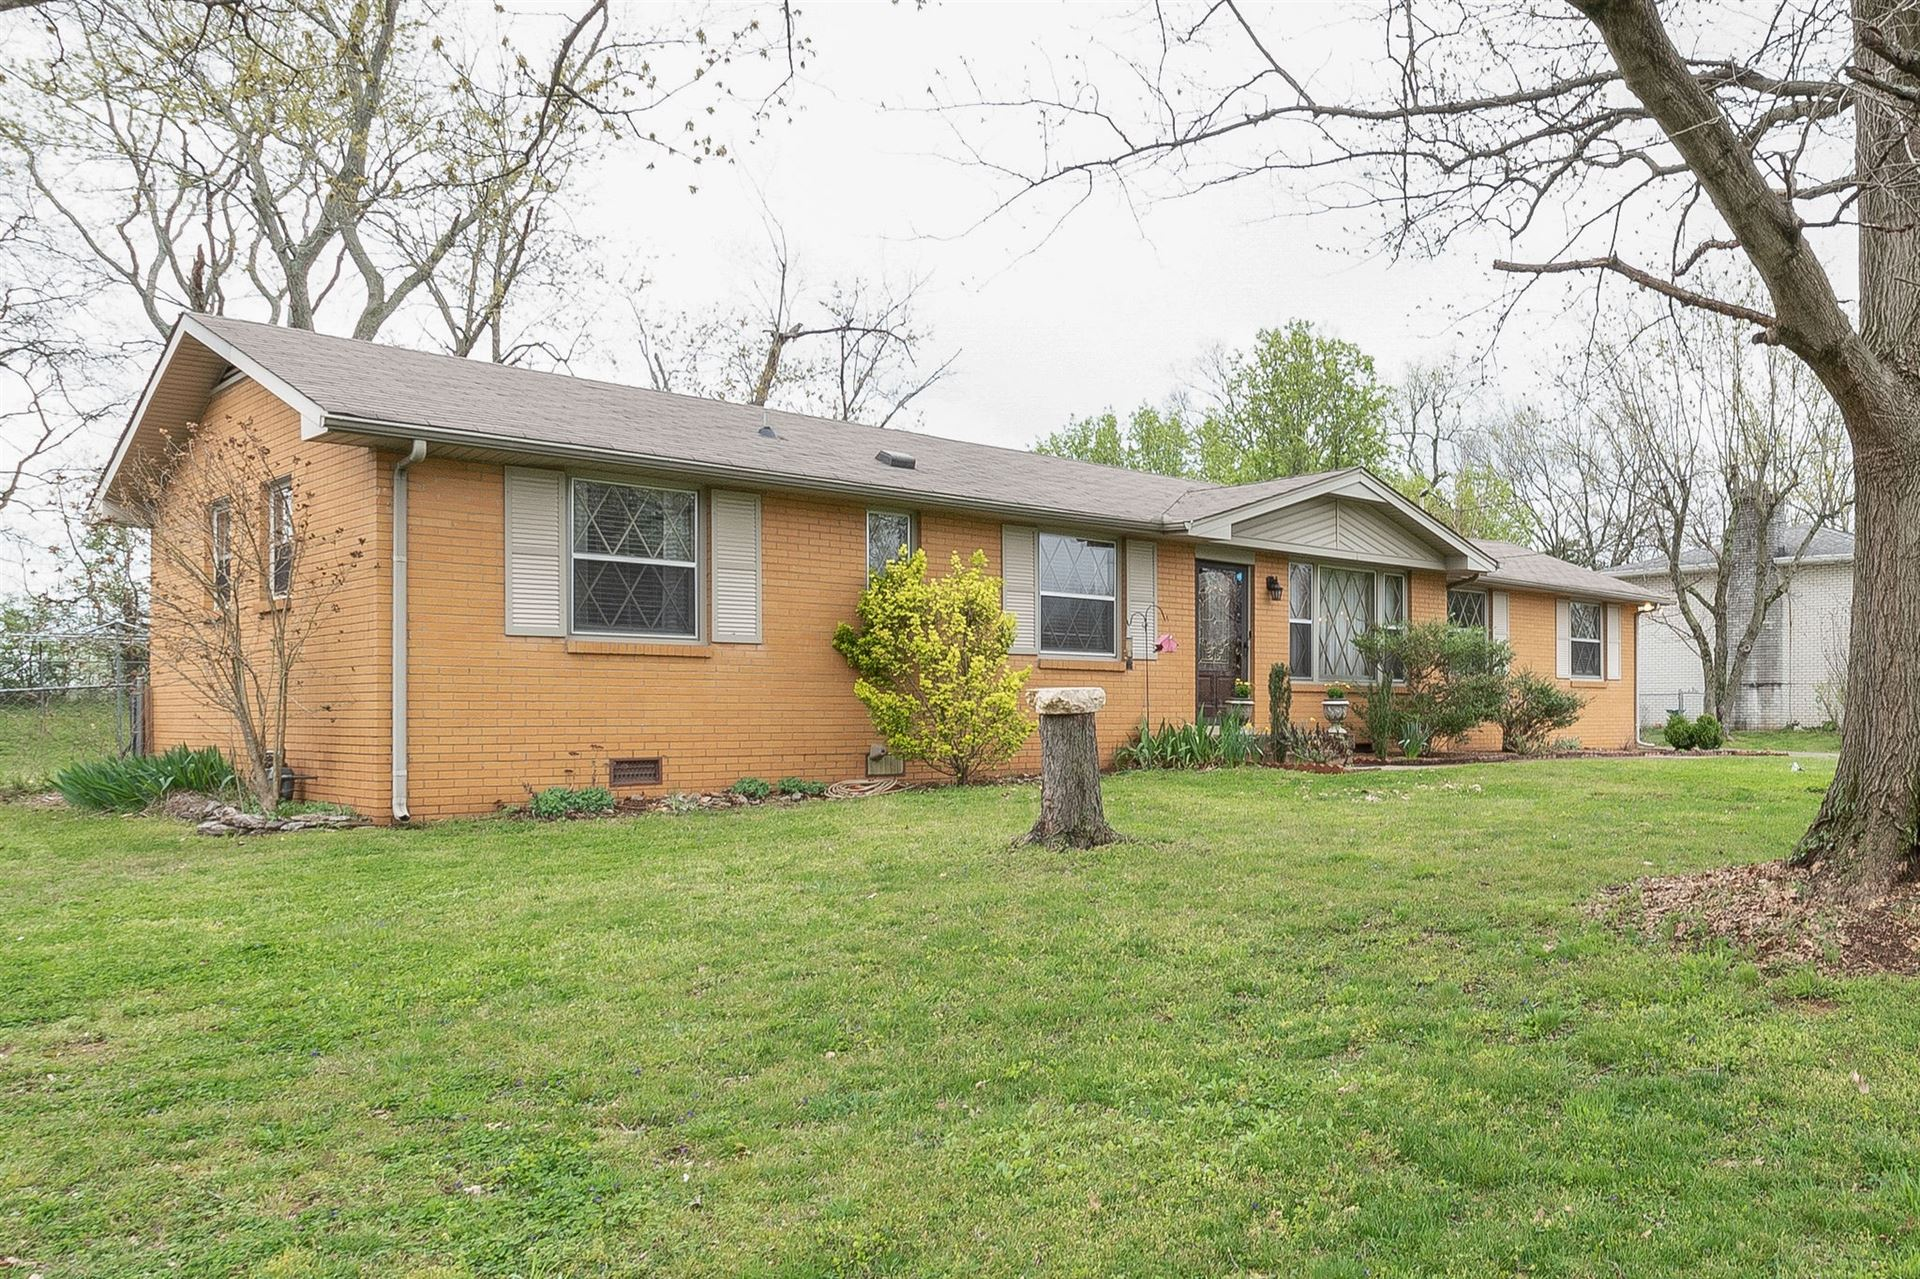 Photo of 4421 Juneau Dr, Hermitage, TN 37076 (MLS # 2135541)